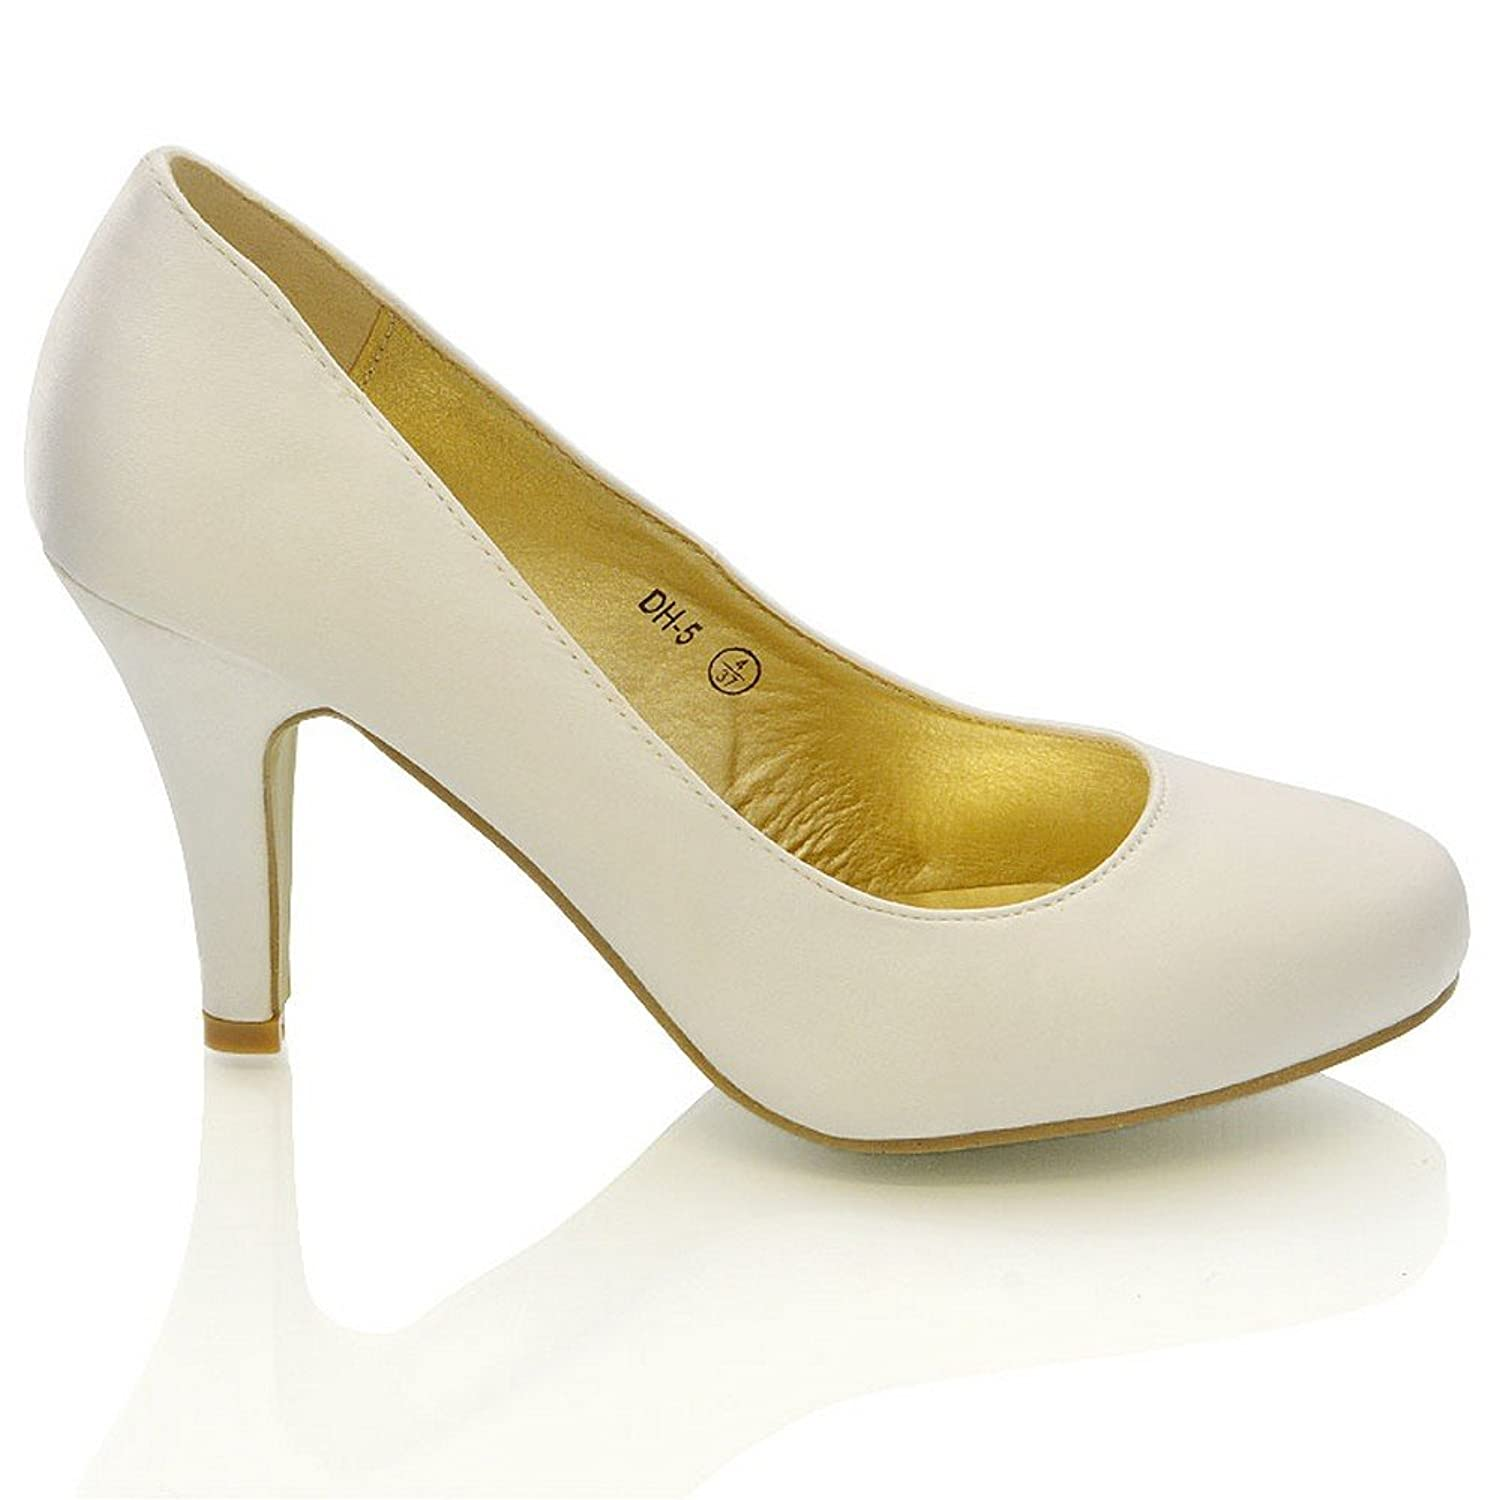 Dune Frill Court Shoes